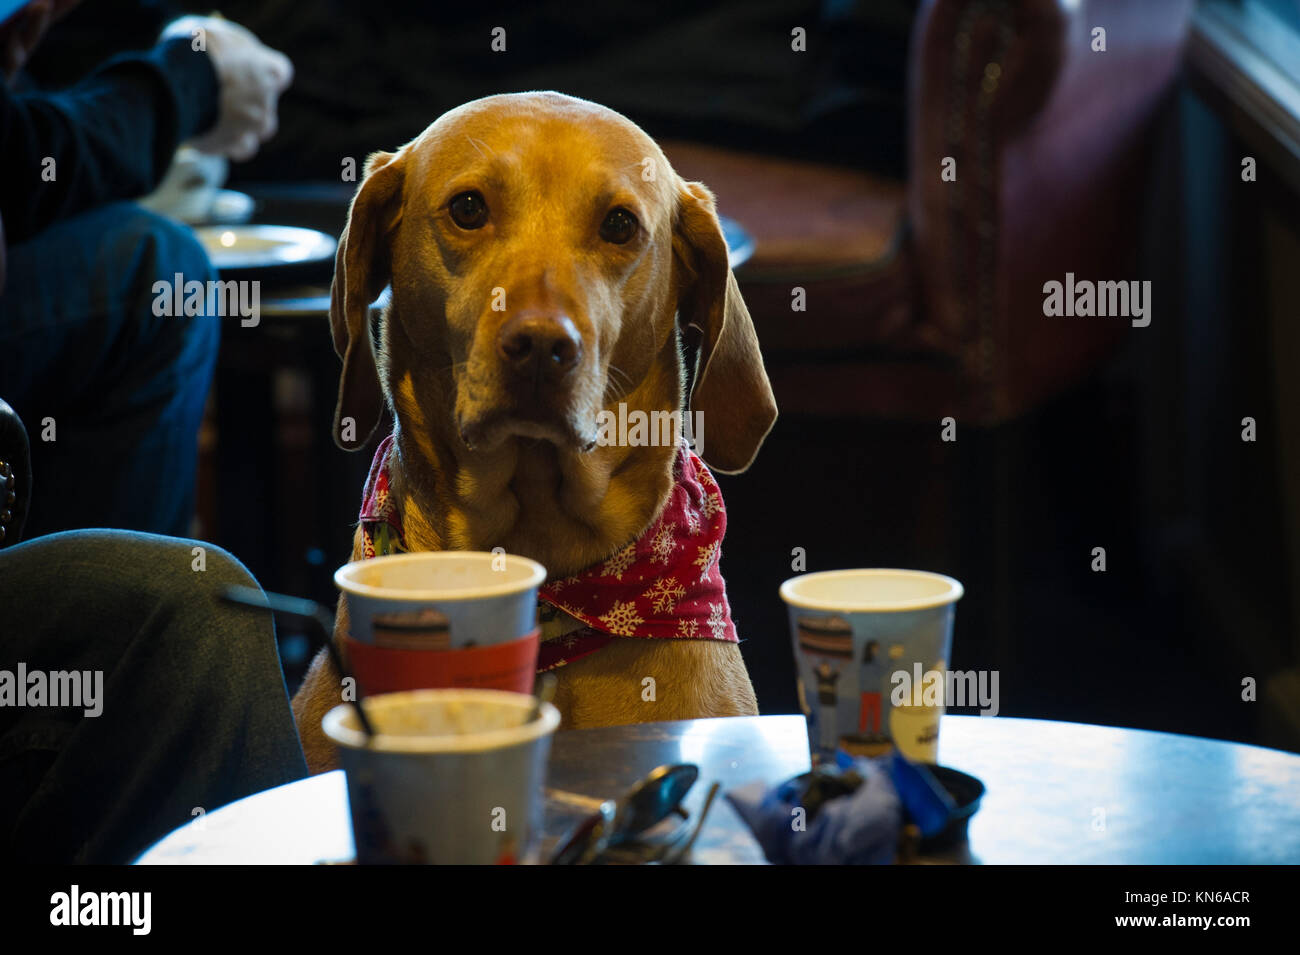 A well behaved Weimaraner dog in a cafe in London - Stock Image